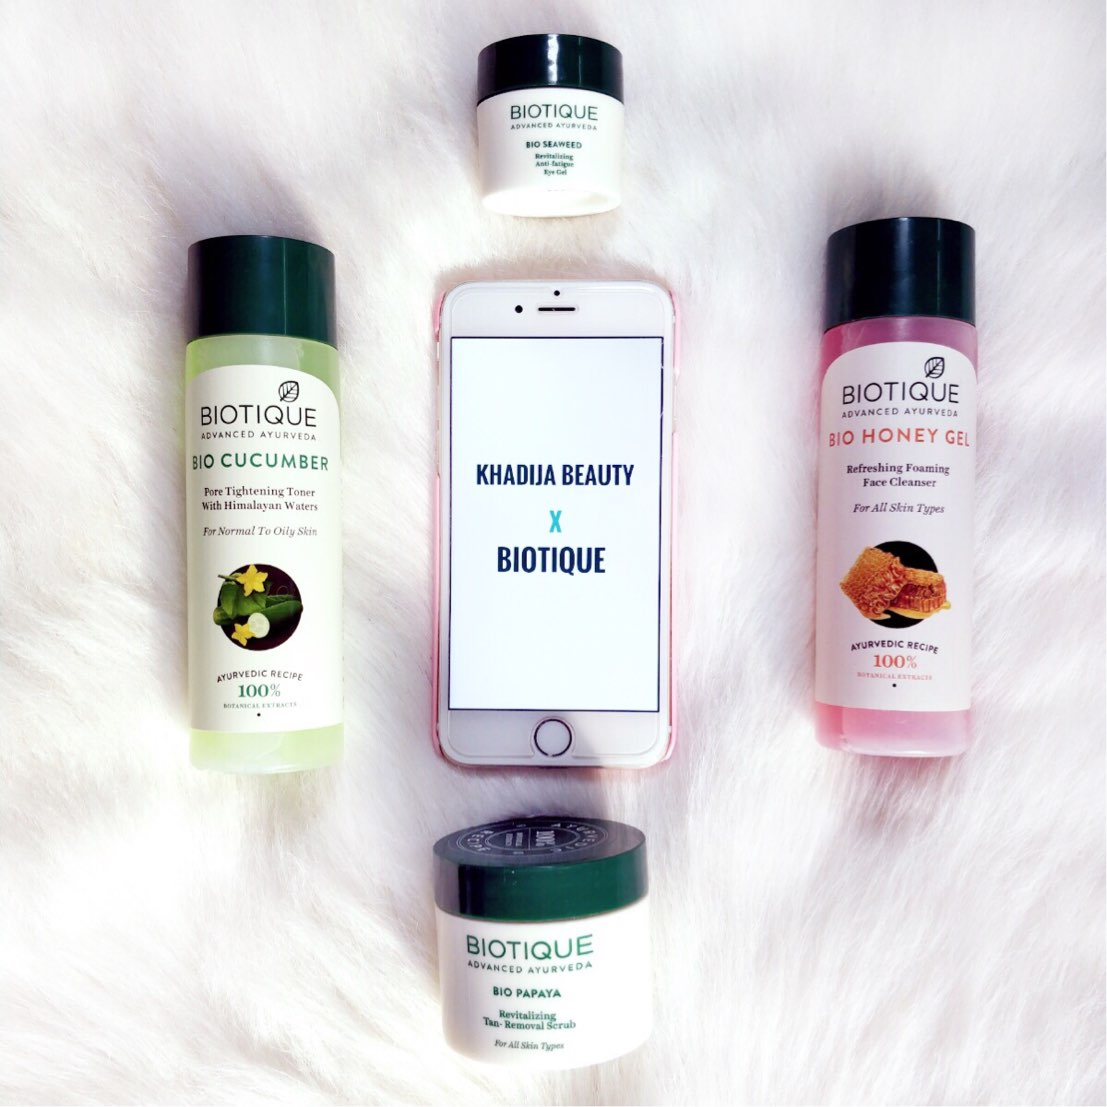 Biotique toner, cleanser, eye gel, scrub review, khadija beauty